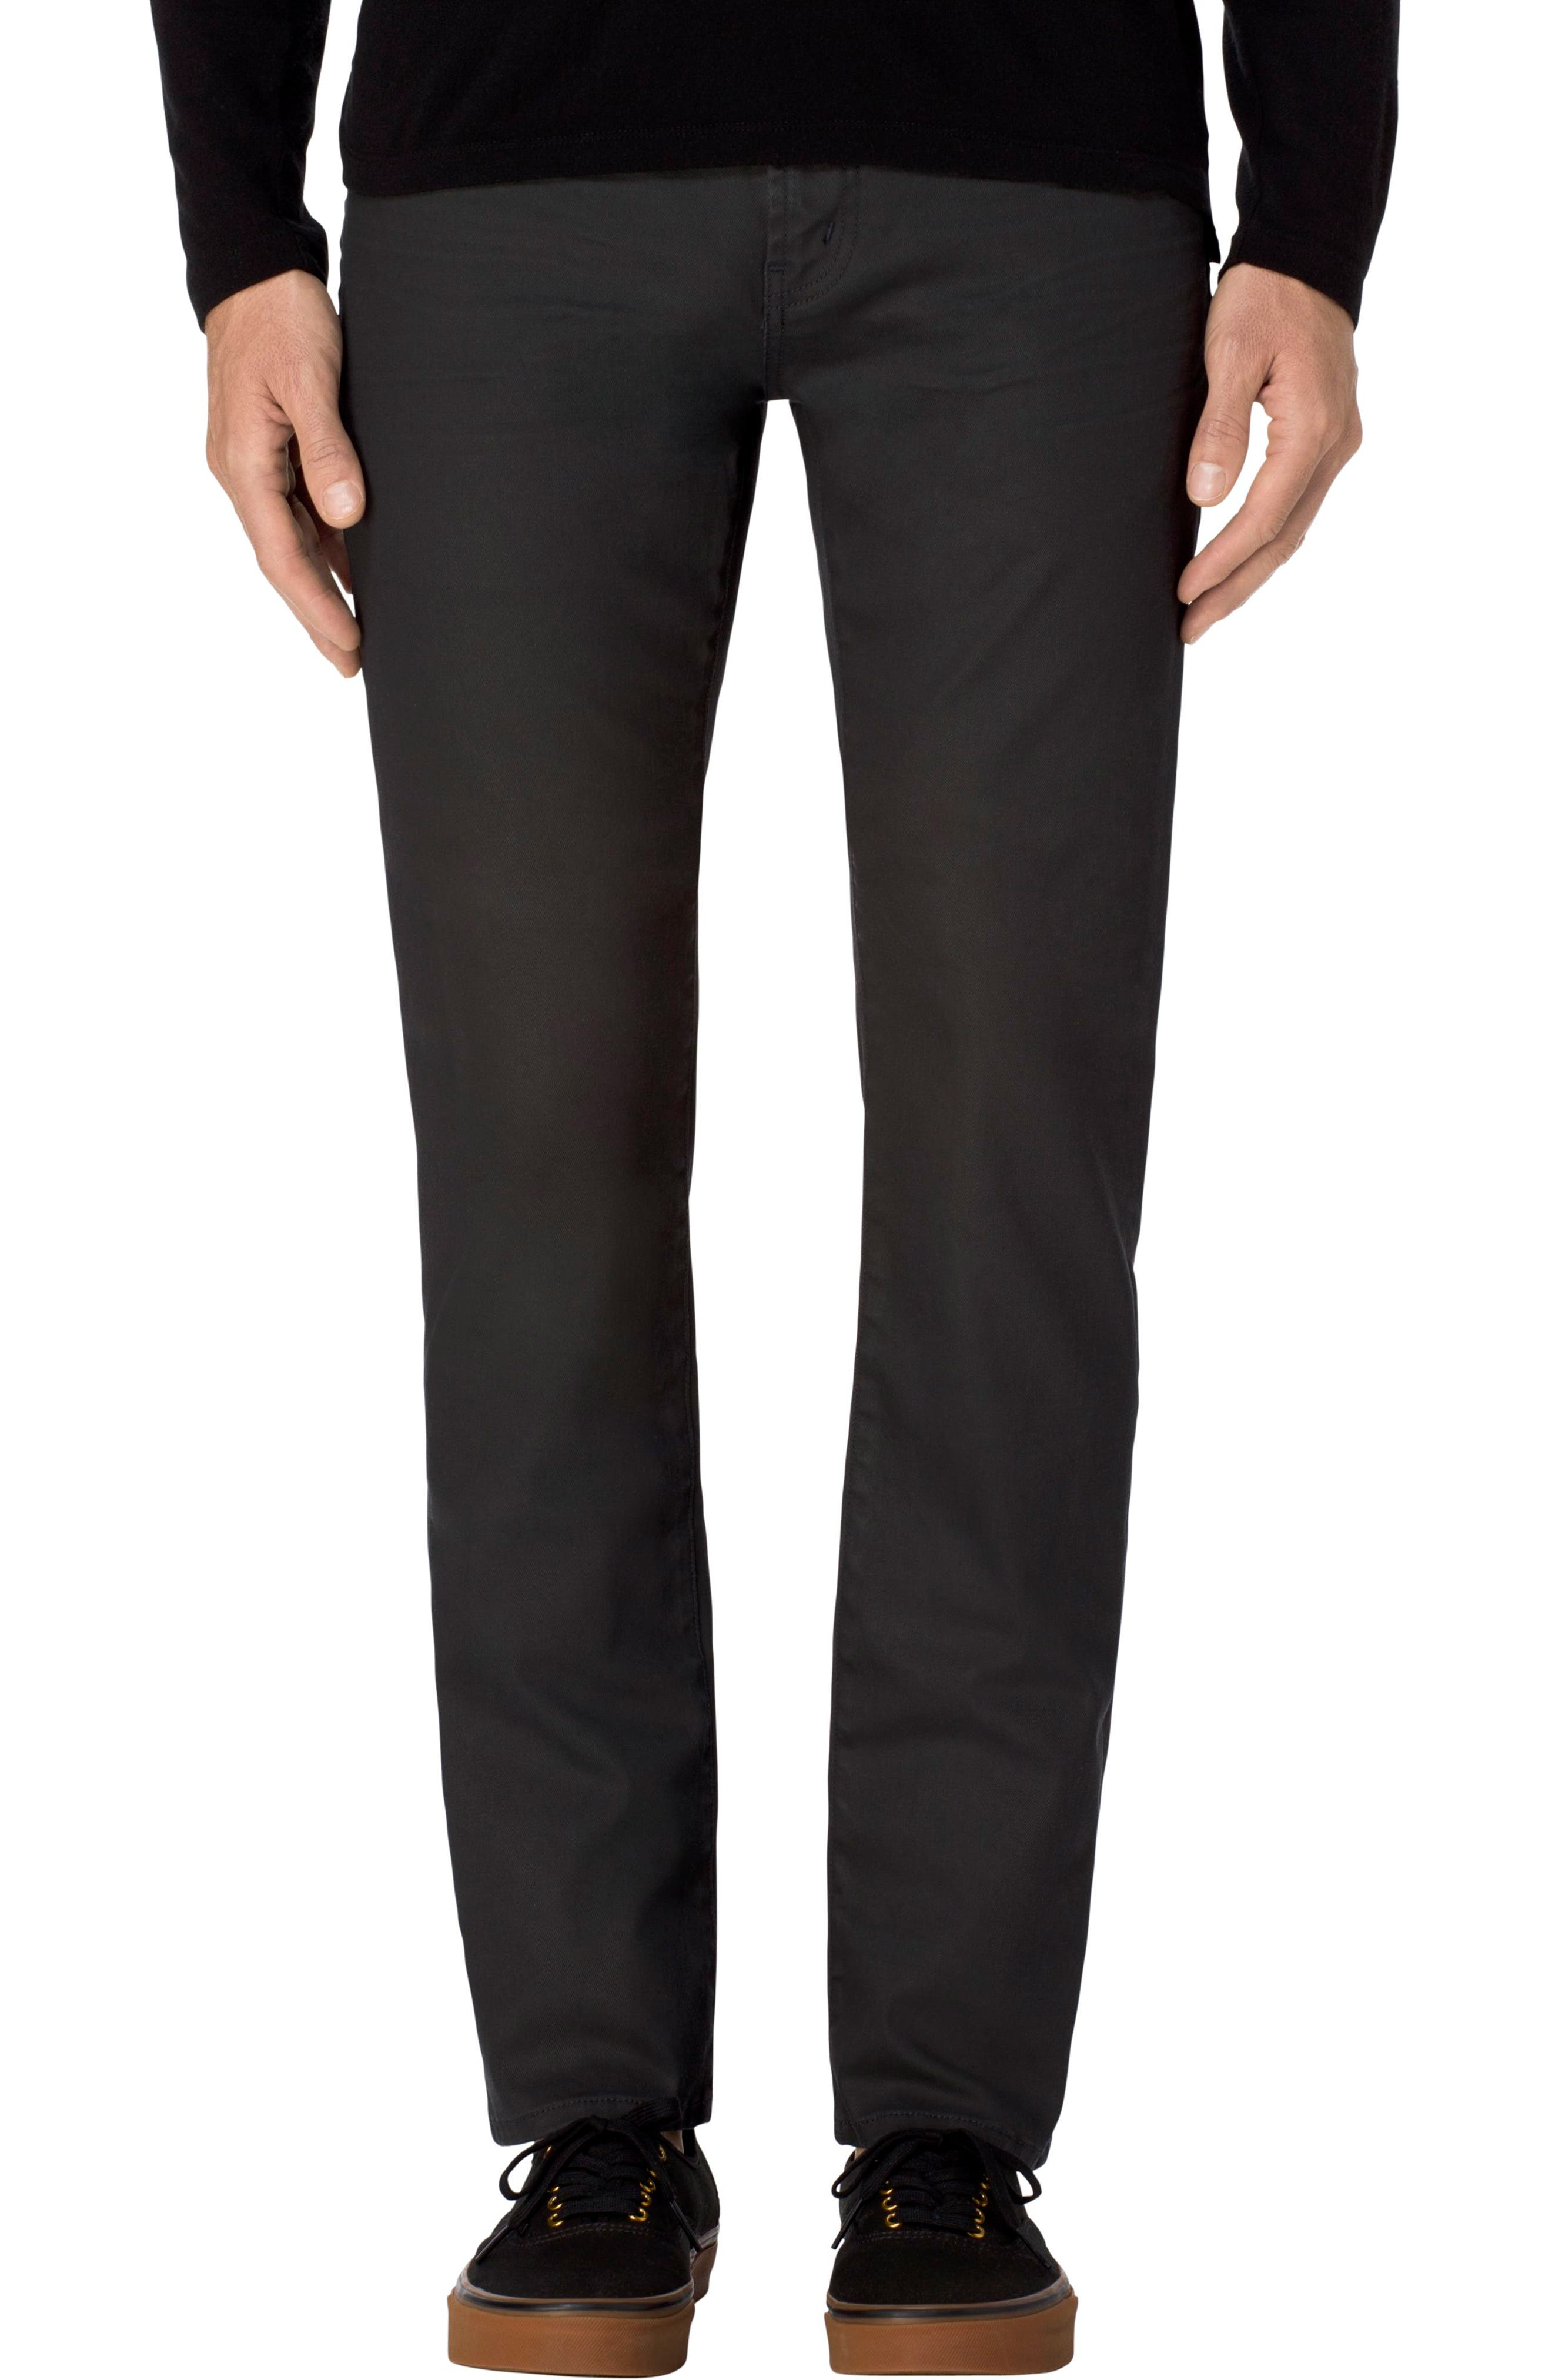 Kane Slim Straight Fit Jeans,                         Main,                         color, Fact